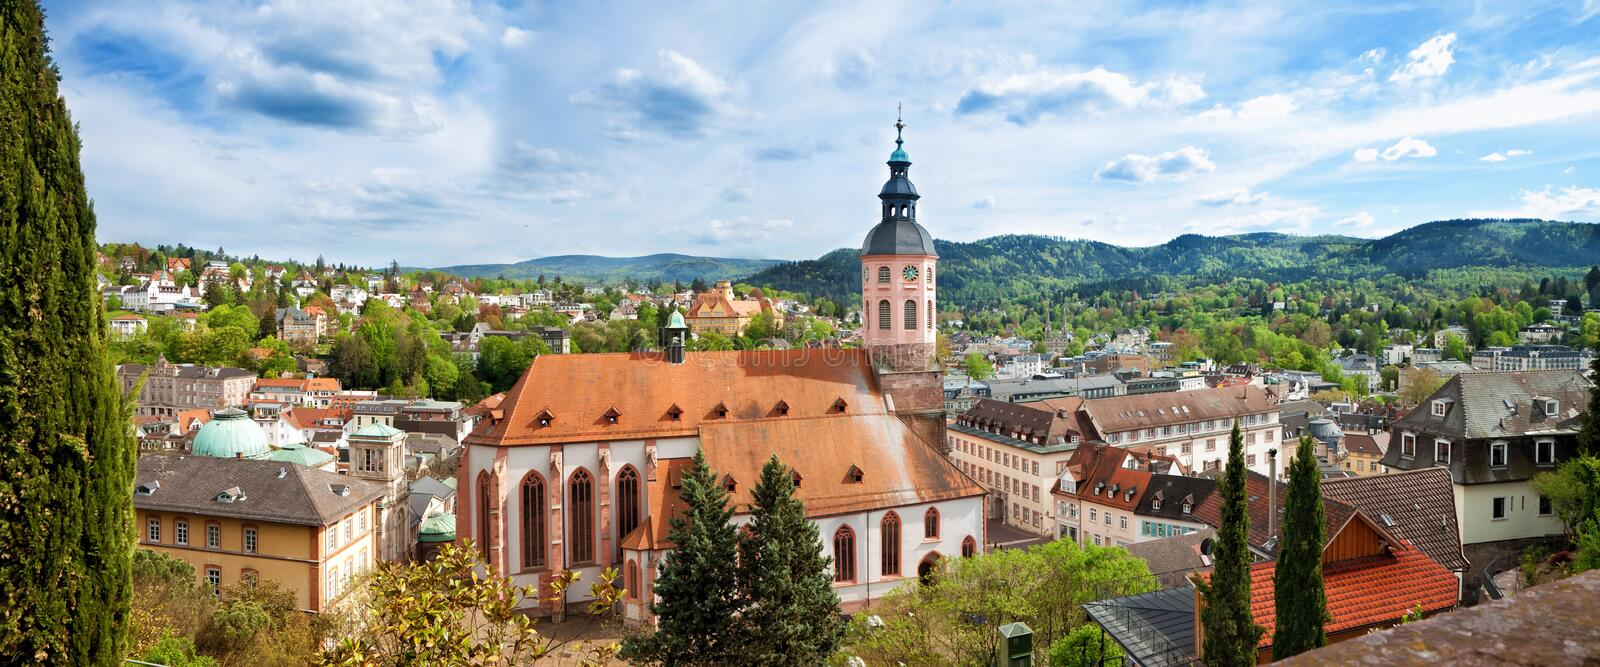 Panoramic view of Baden-Baden. Europe, Germany royalty free stock photography